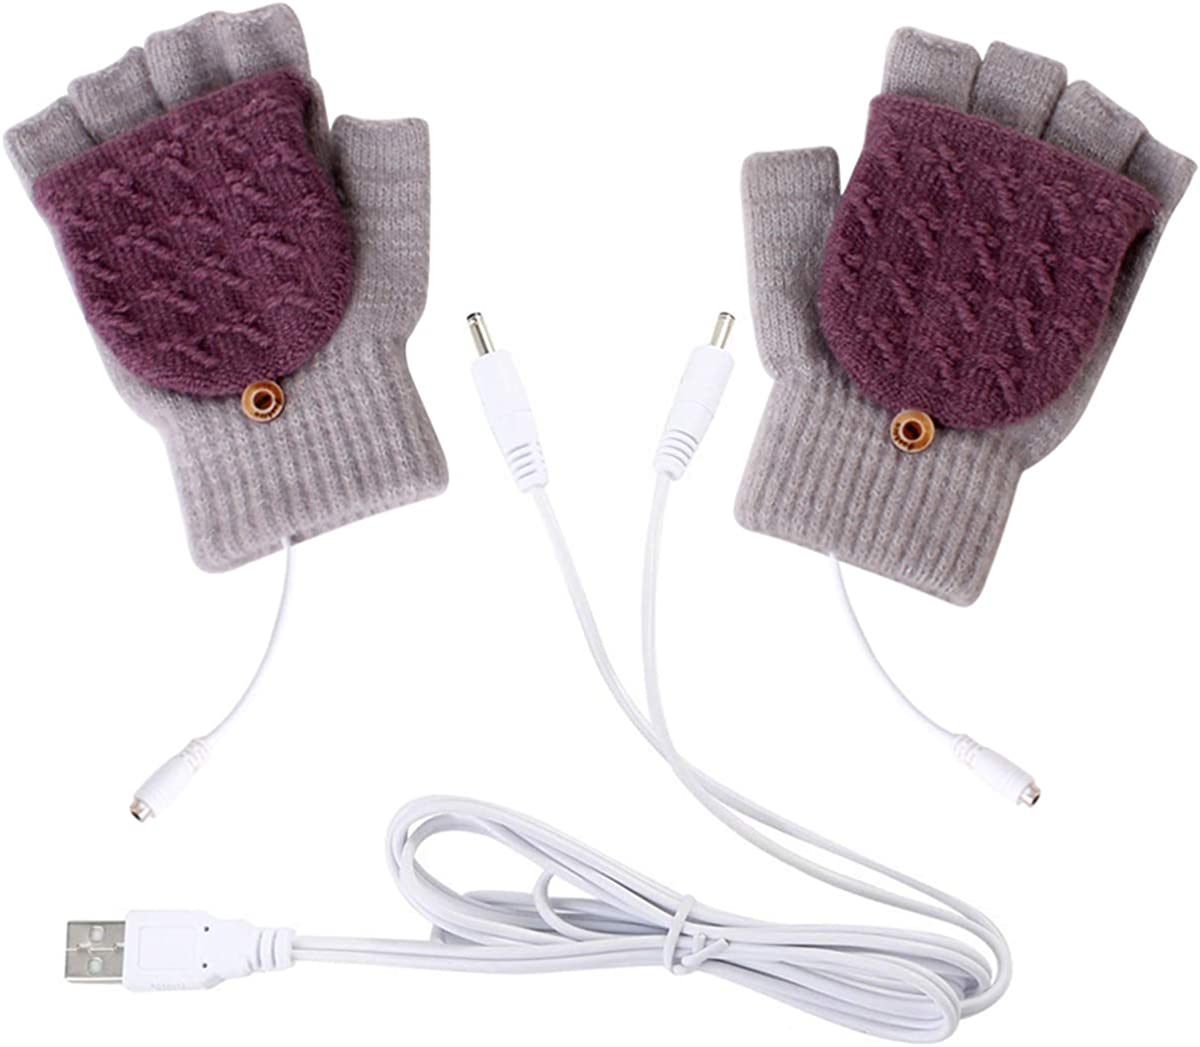 puseky USB Heated Gloves Winter Full Half Fingers Electric Heating Warm Gloves Mittens